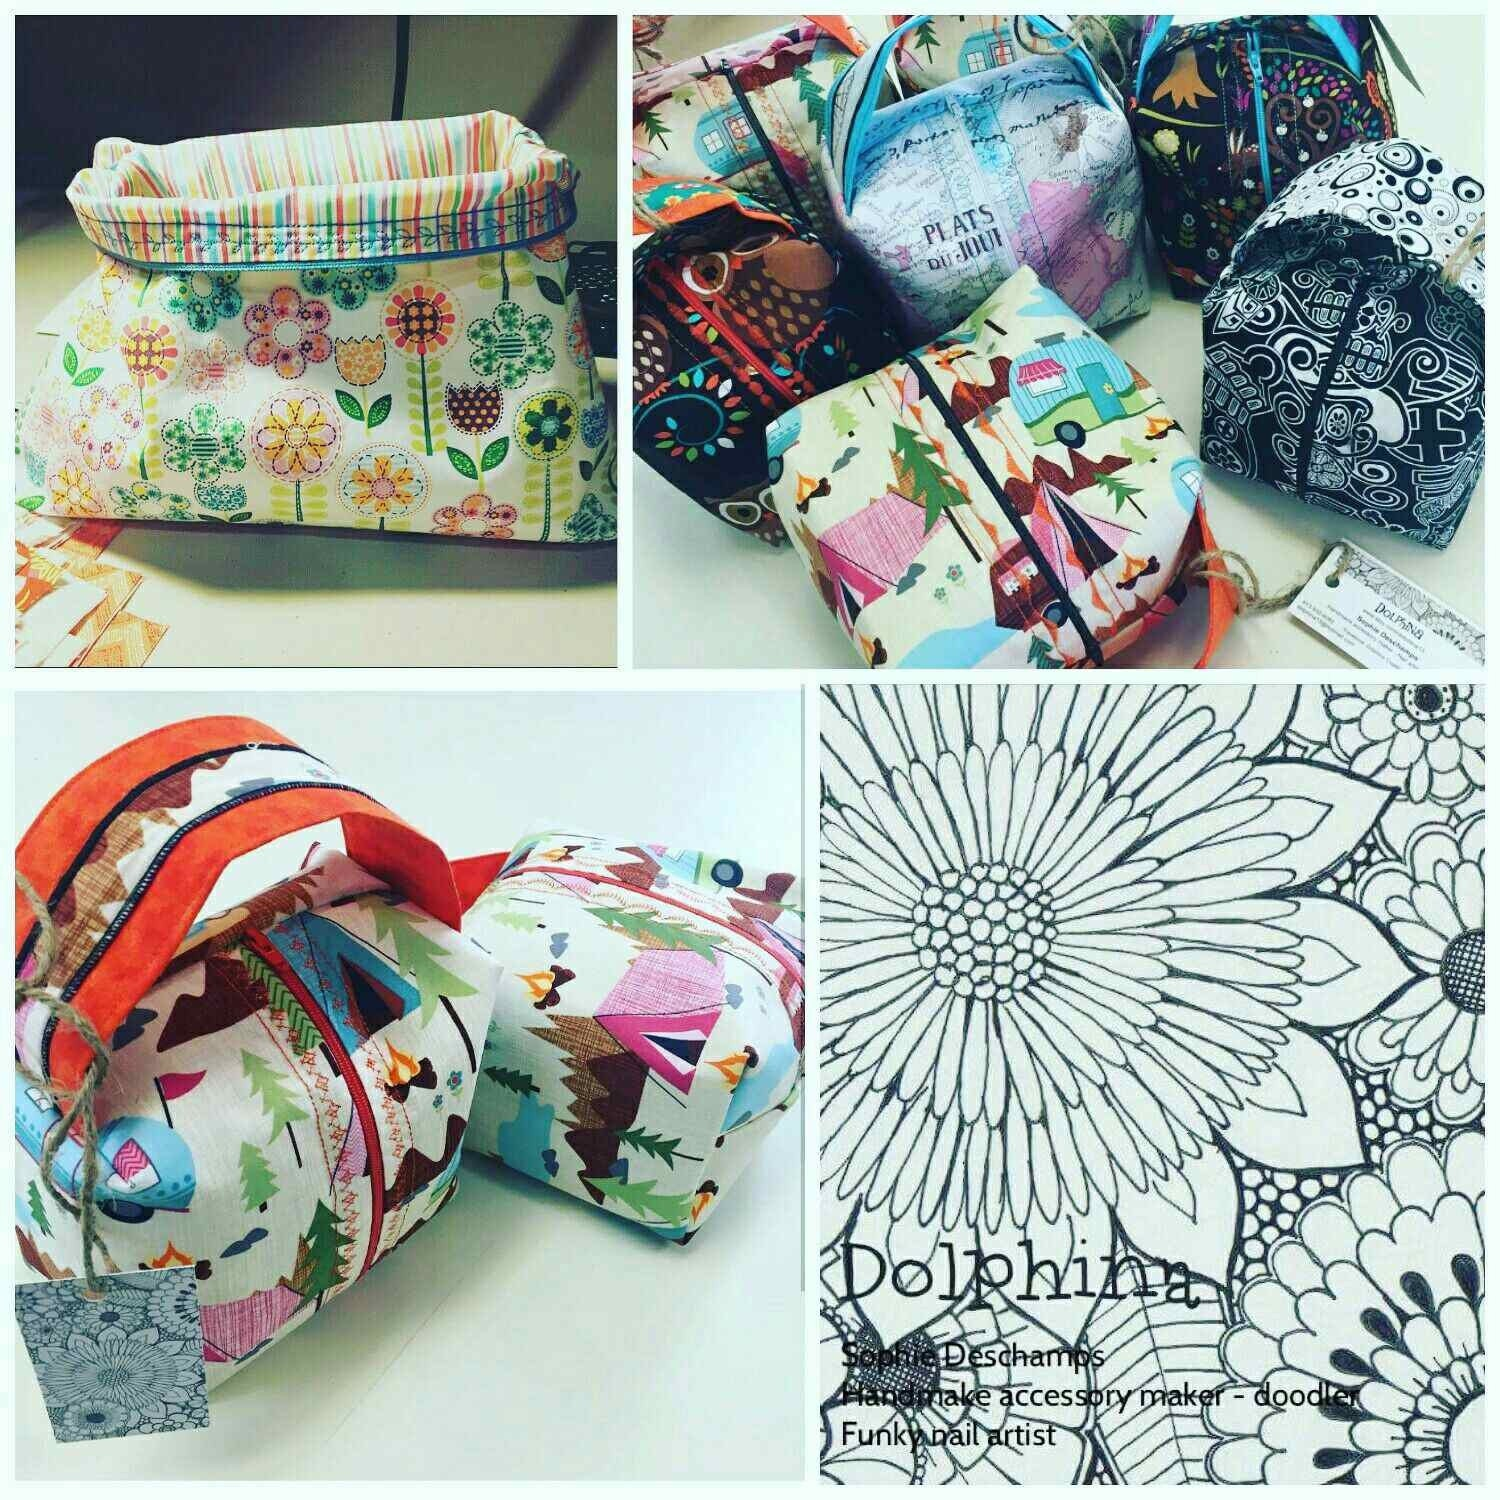 Beautifully crafted project bags for fibre lovers by dolphina13